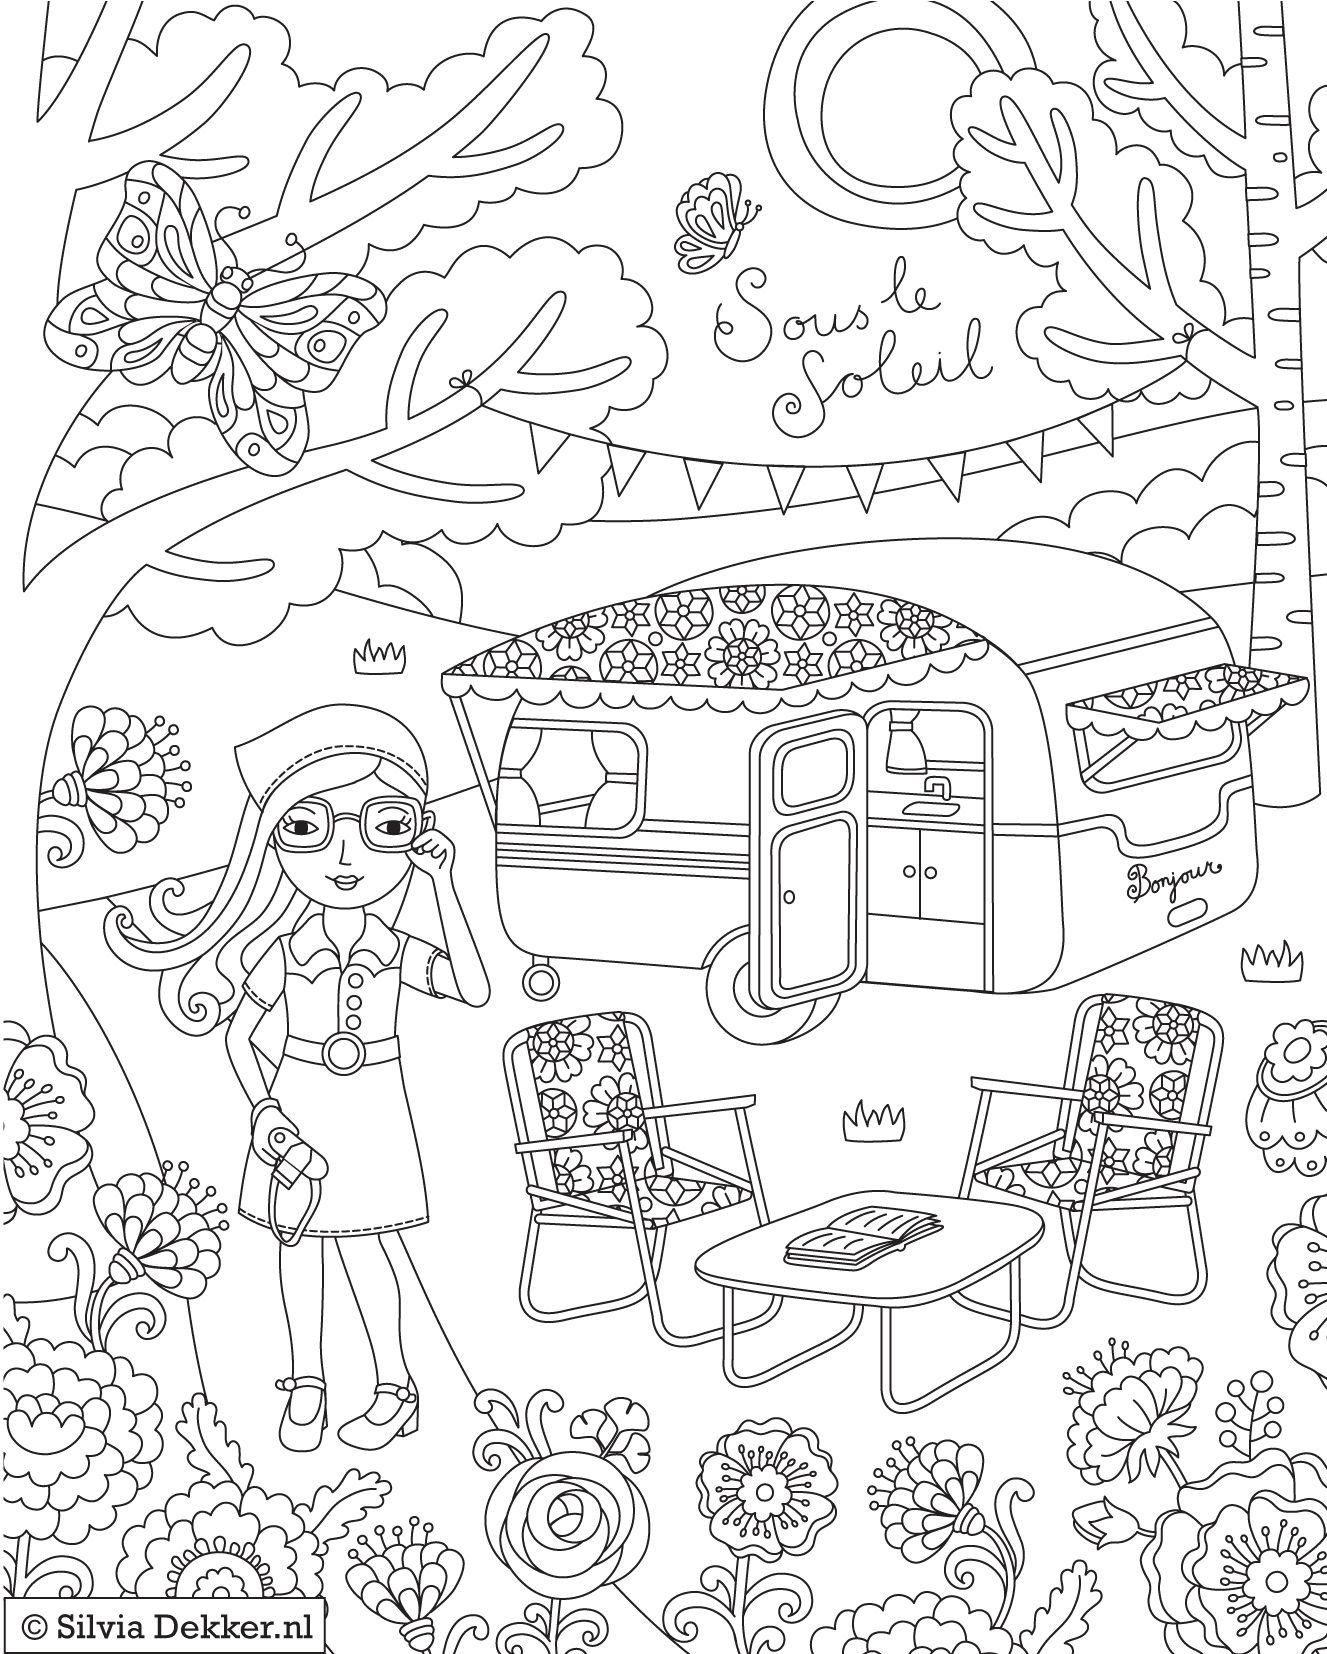 Camping Coloring Pages For Kids Camping Coloring Page For Flow Magazine By Silvia Dekker Camping Coloring Pages Coloring Pages To Print Coloring Pages